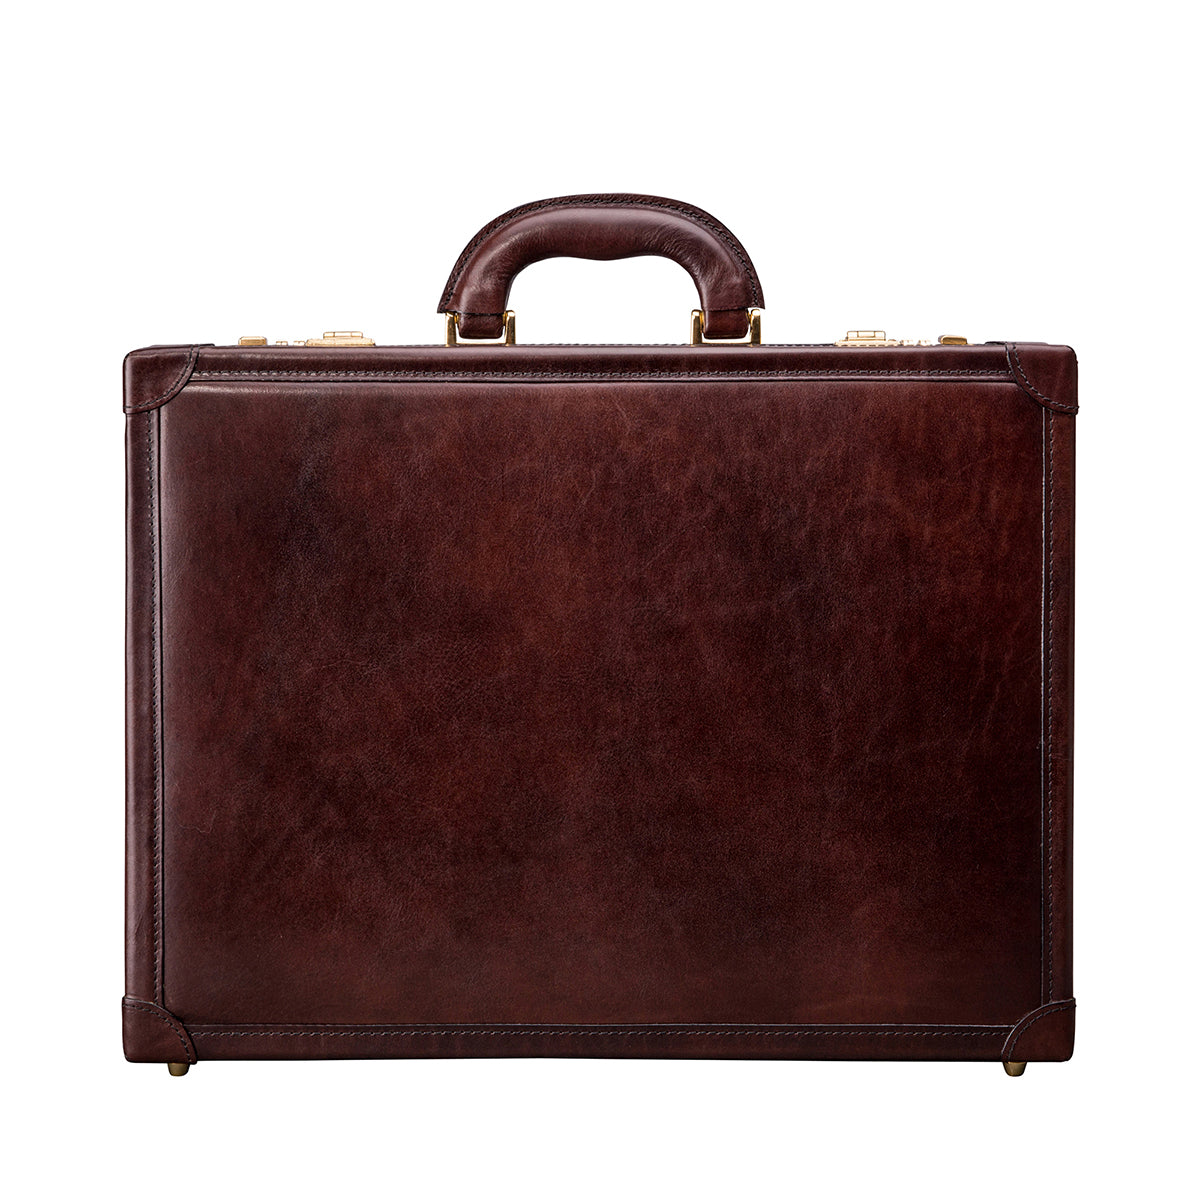 Image 1 of the 'Scanno' Slim Dark Chocolate Veg-Tanned Leather Business Attaché  Case